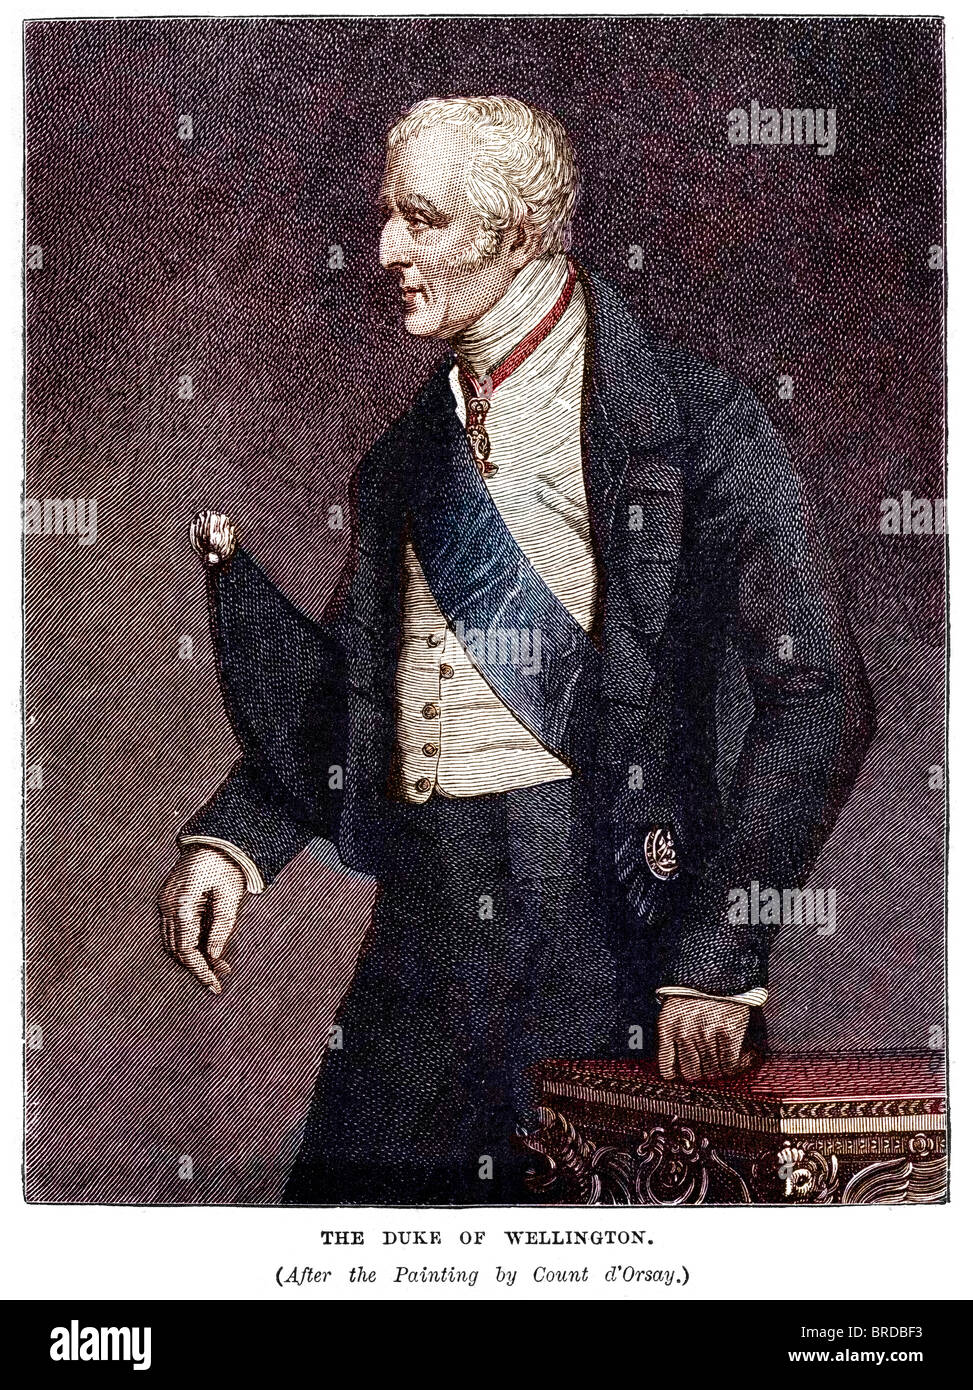 Field Marshal Arthur Wellesley, 1st Duke of Wellington, (1769 to 1852), was an Anglo-Irish soldier - Stock Image